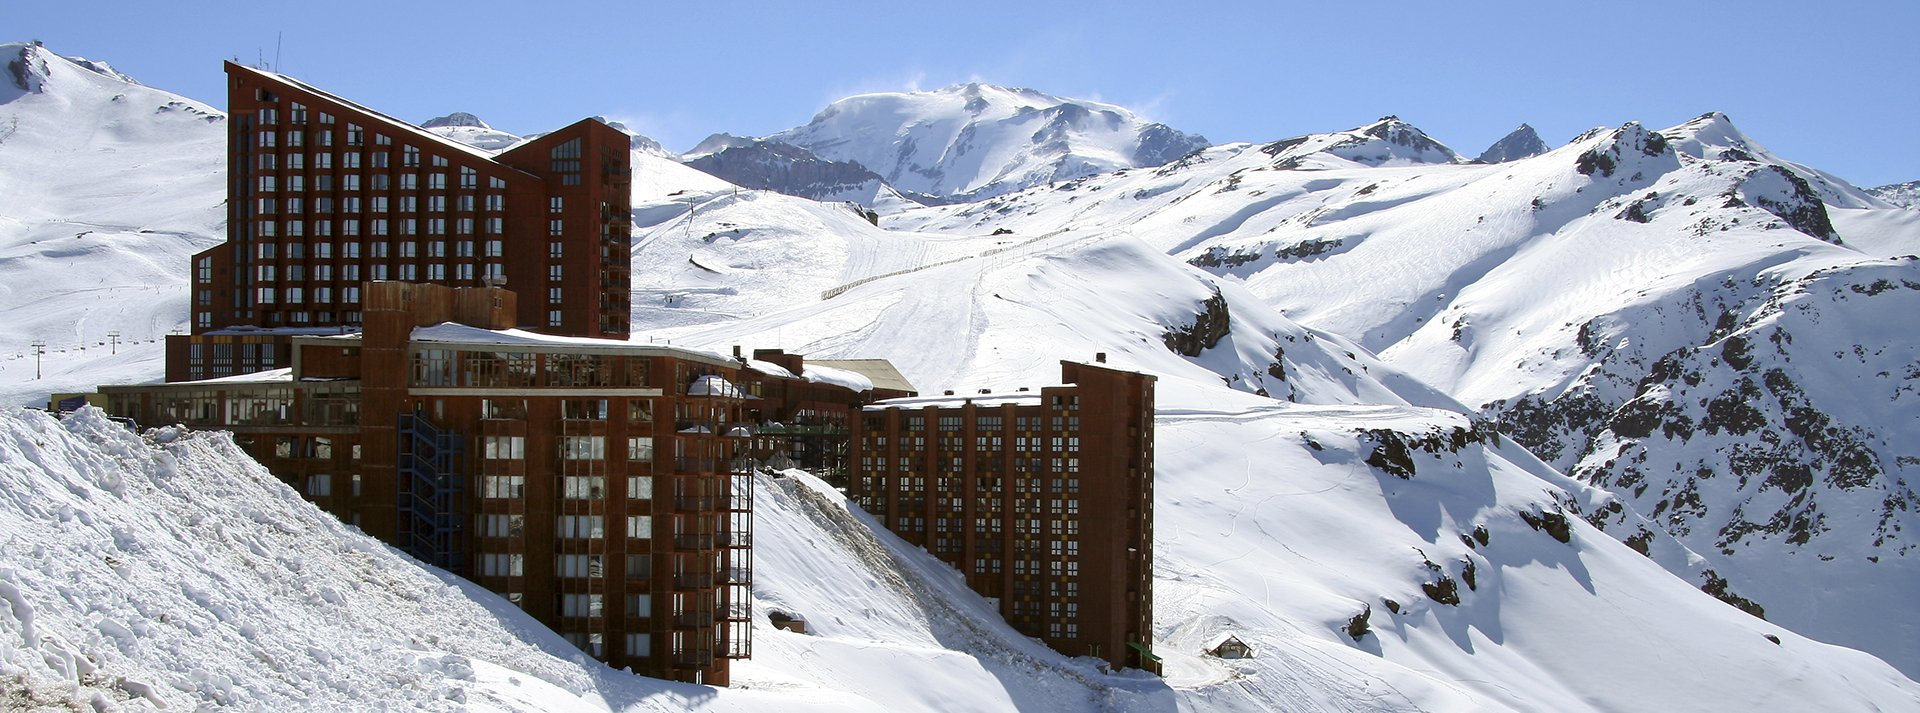 Valle Nevado Ski Resort , Chile